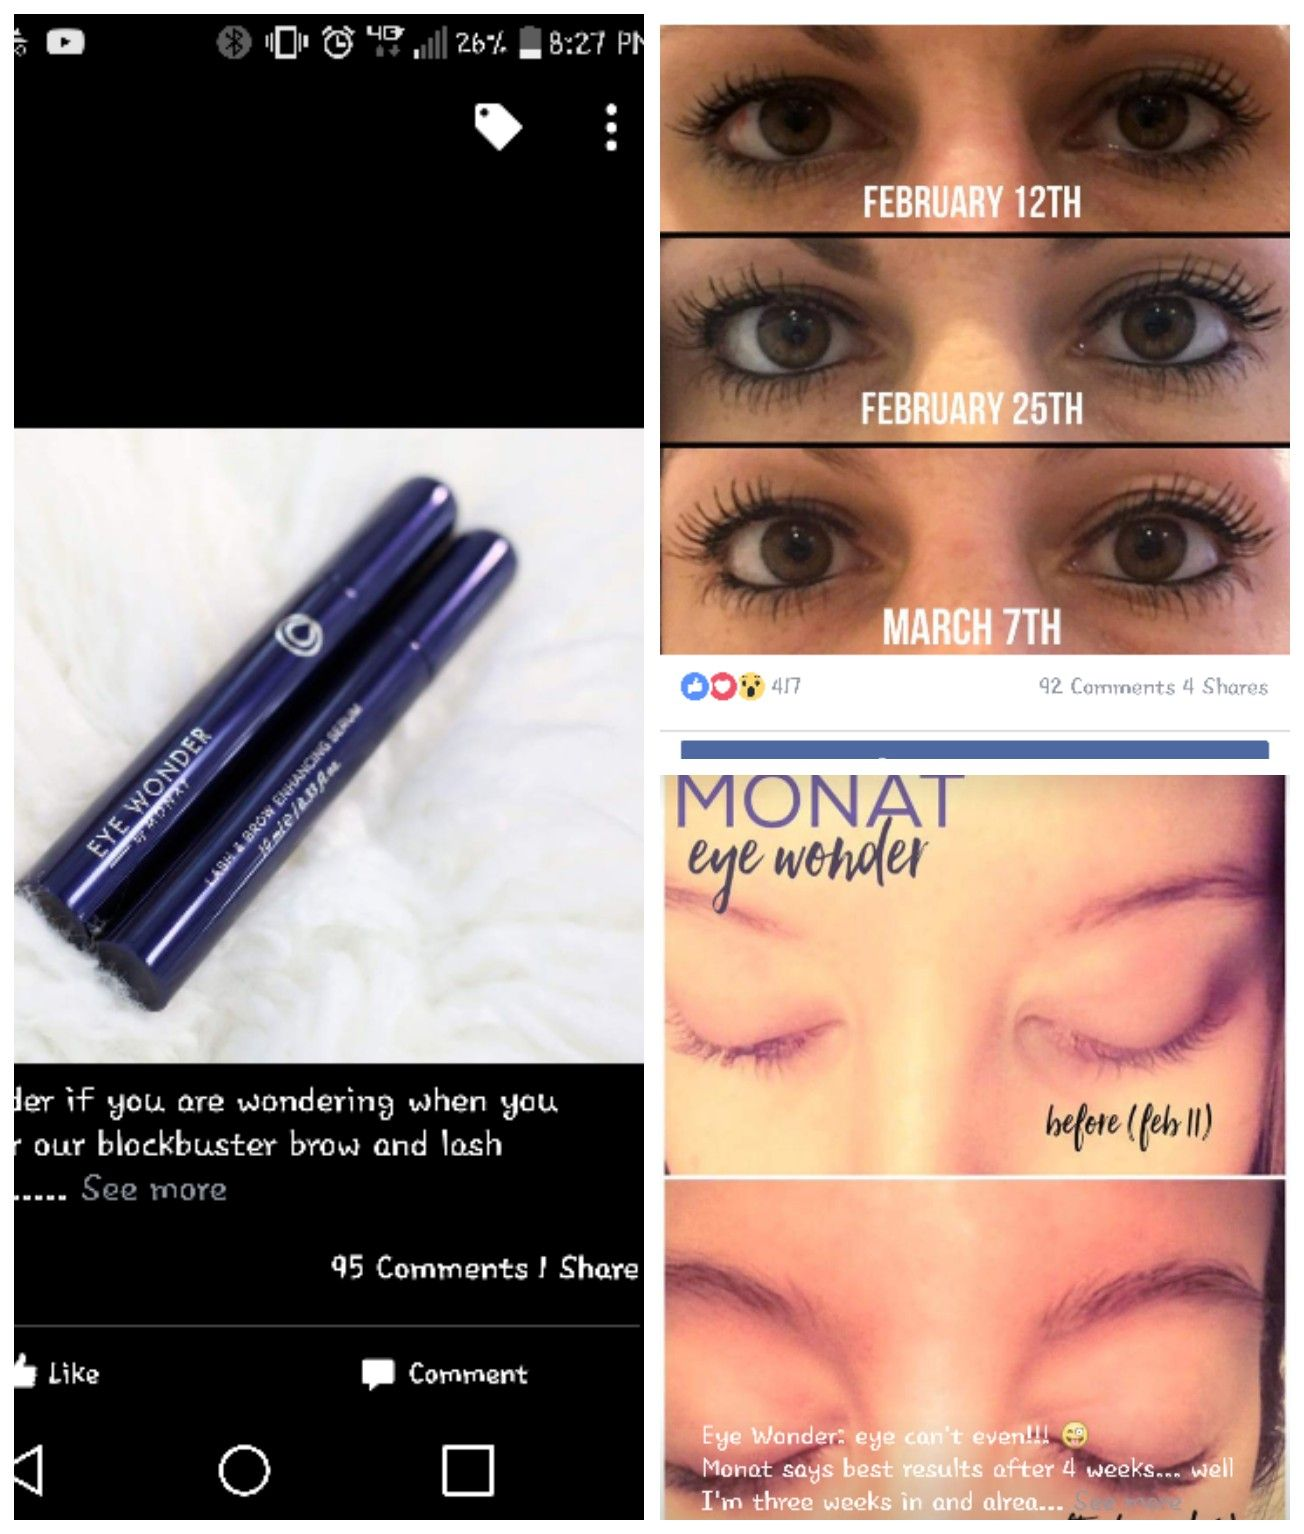 eceefbef642 Lash and Eyebrow serum. For longer, thicker lashes and help grow brows...be  eye-dolized with EYE WONDER by MONAT www.mymonat.com/corabalbin